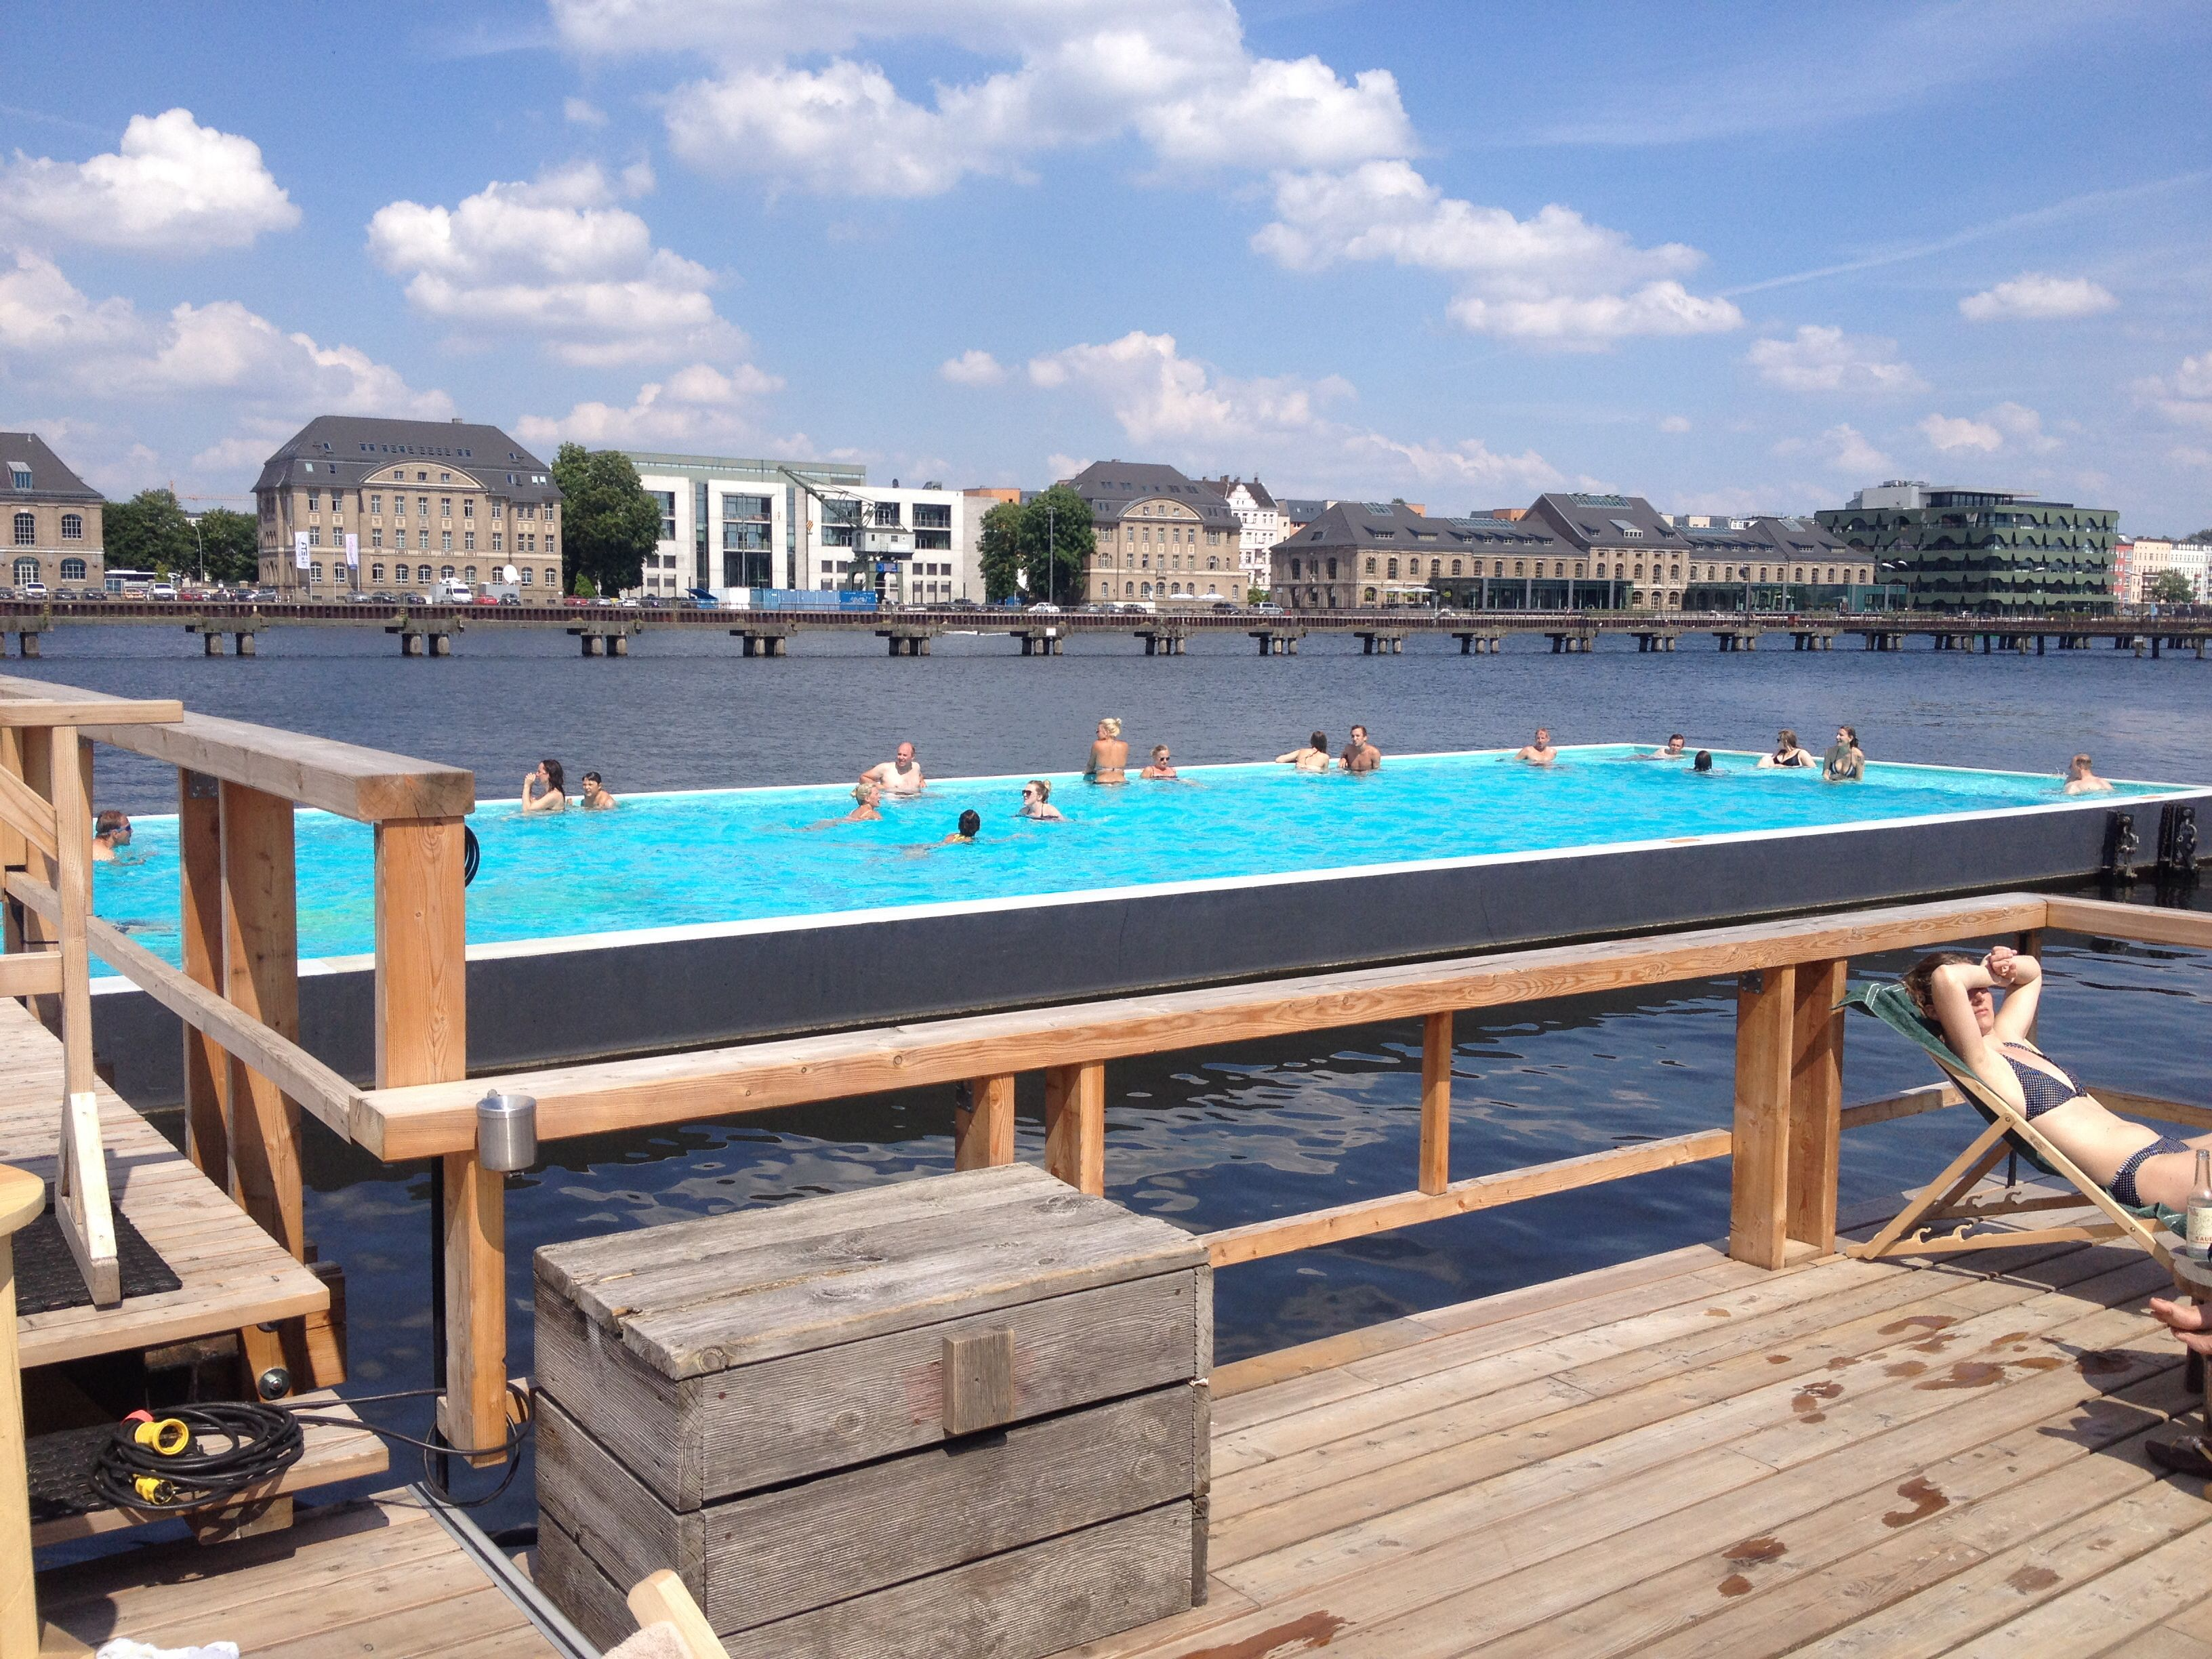 Badeschiff In Berlin  A Shipping Container Turned Pool, Lowered Into The